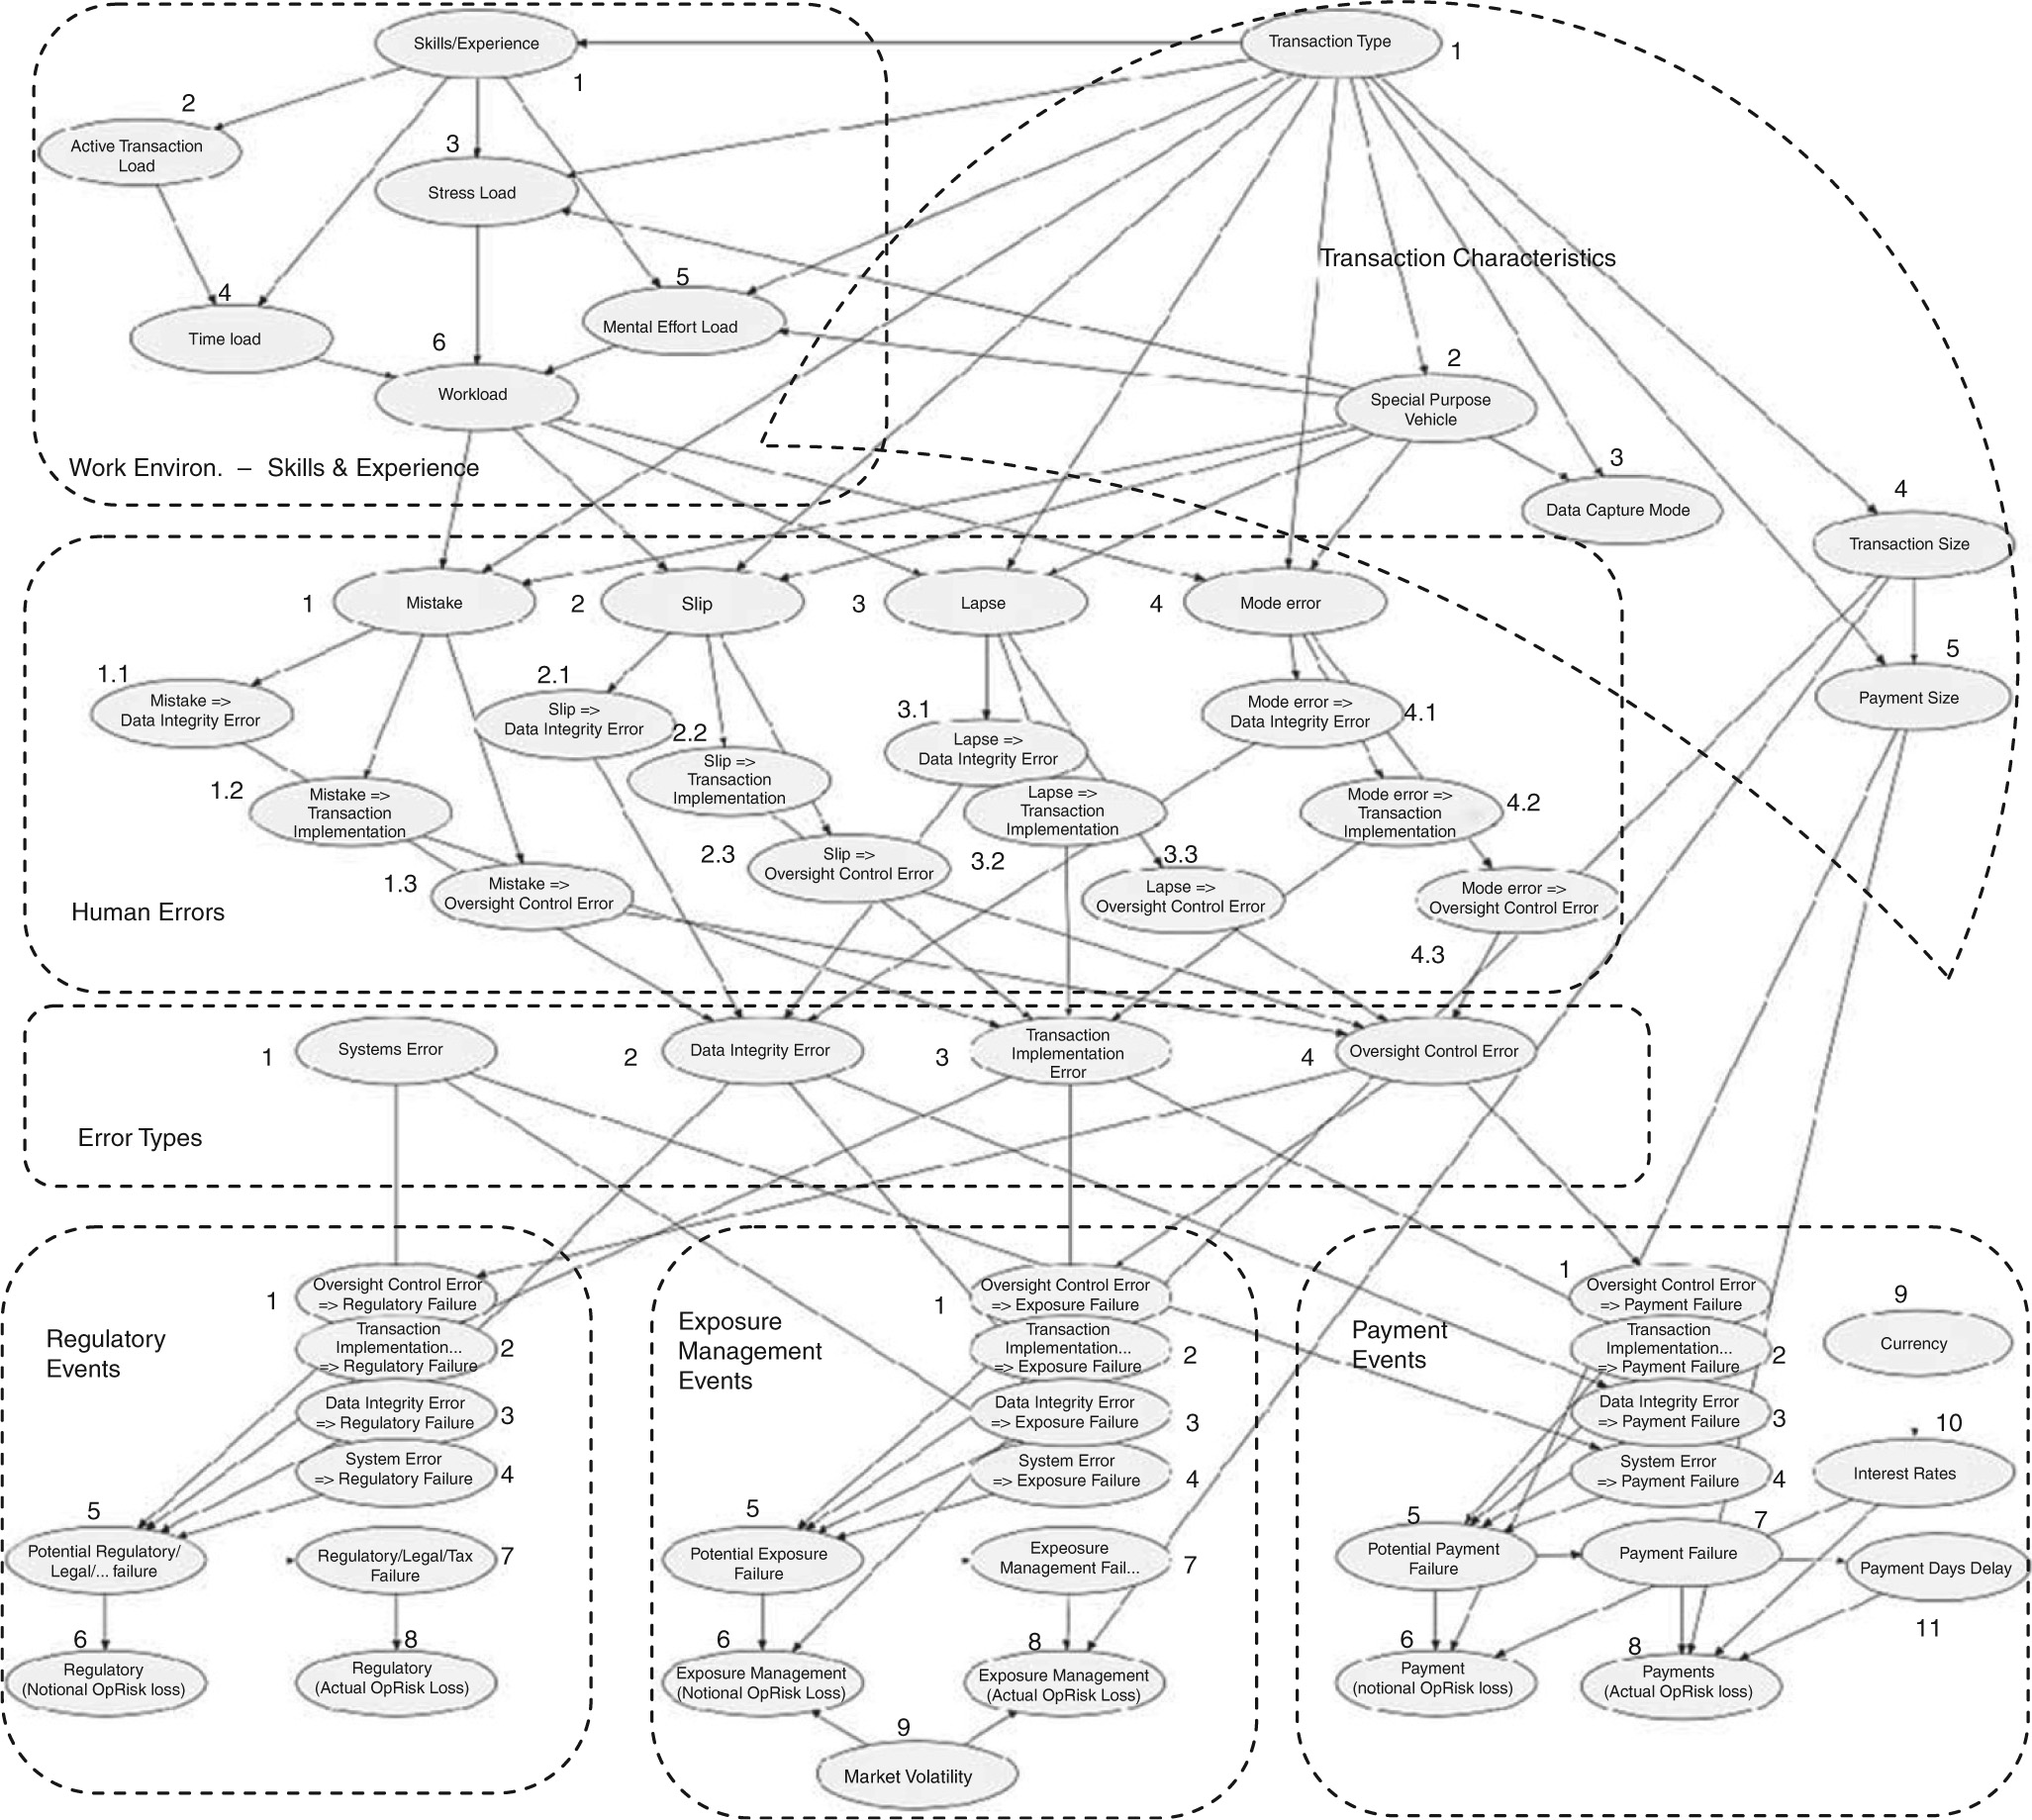 Operational risk modelling and organizational learning in